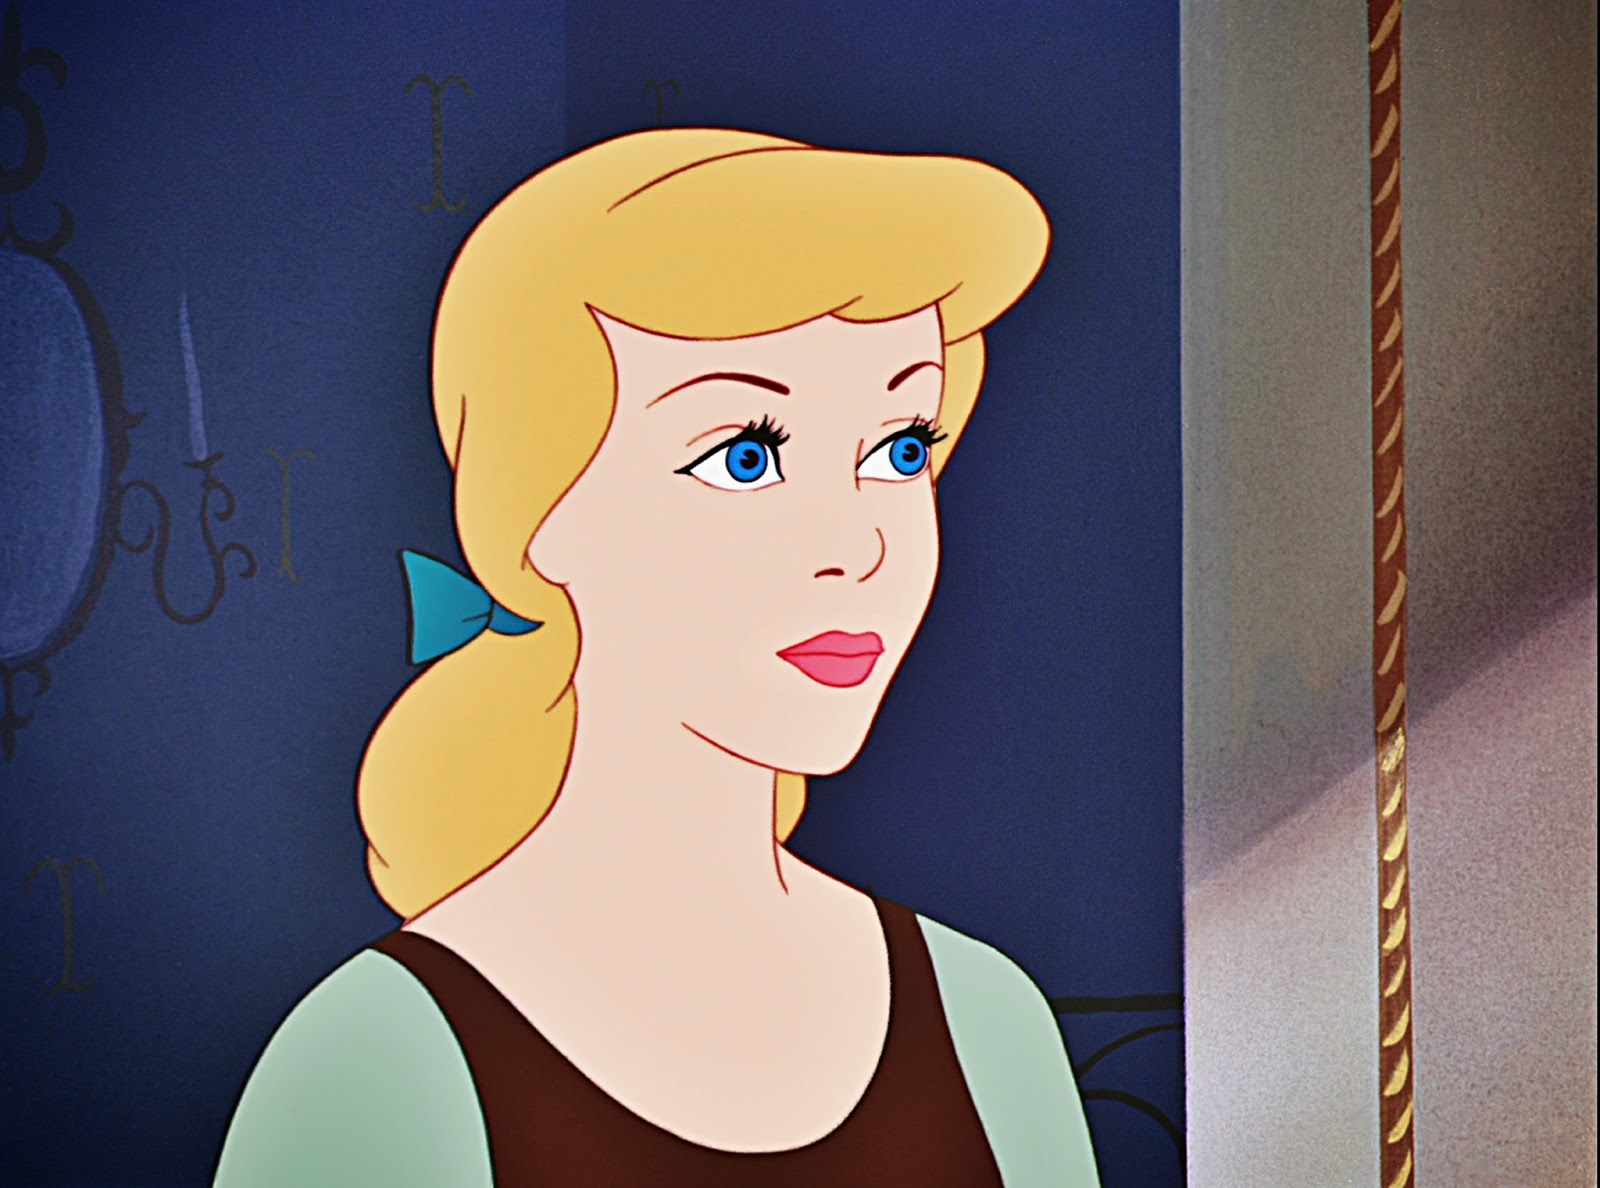 symbolism disney s cinderella The walt disney pictures logo in the story behind this is the first appearance of the sleeping beauty or cinderella castle which is iconic for the disney themeparks.